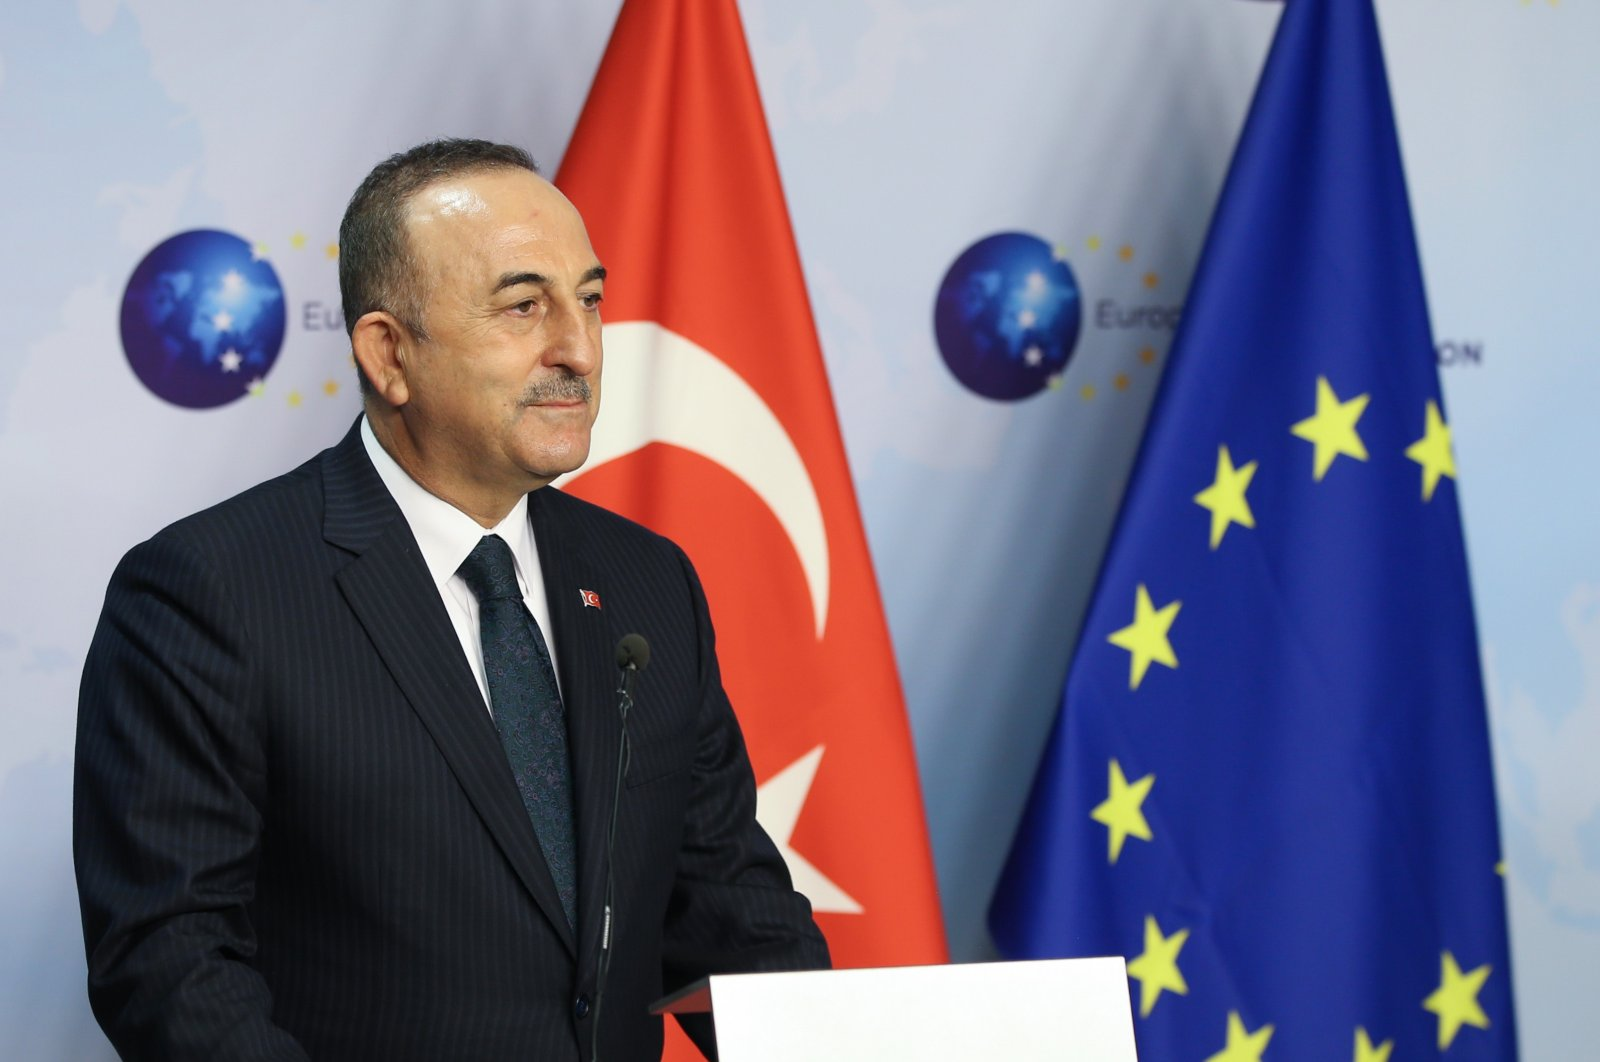 Foreign Minister Mevlüt Çavuşoğlu speaks during a joint press conference with EU foreign policy chief Josep Borrell in Brussels, Belgium, Jan. 21, 2021 (AA Photo)